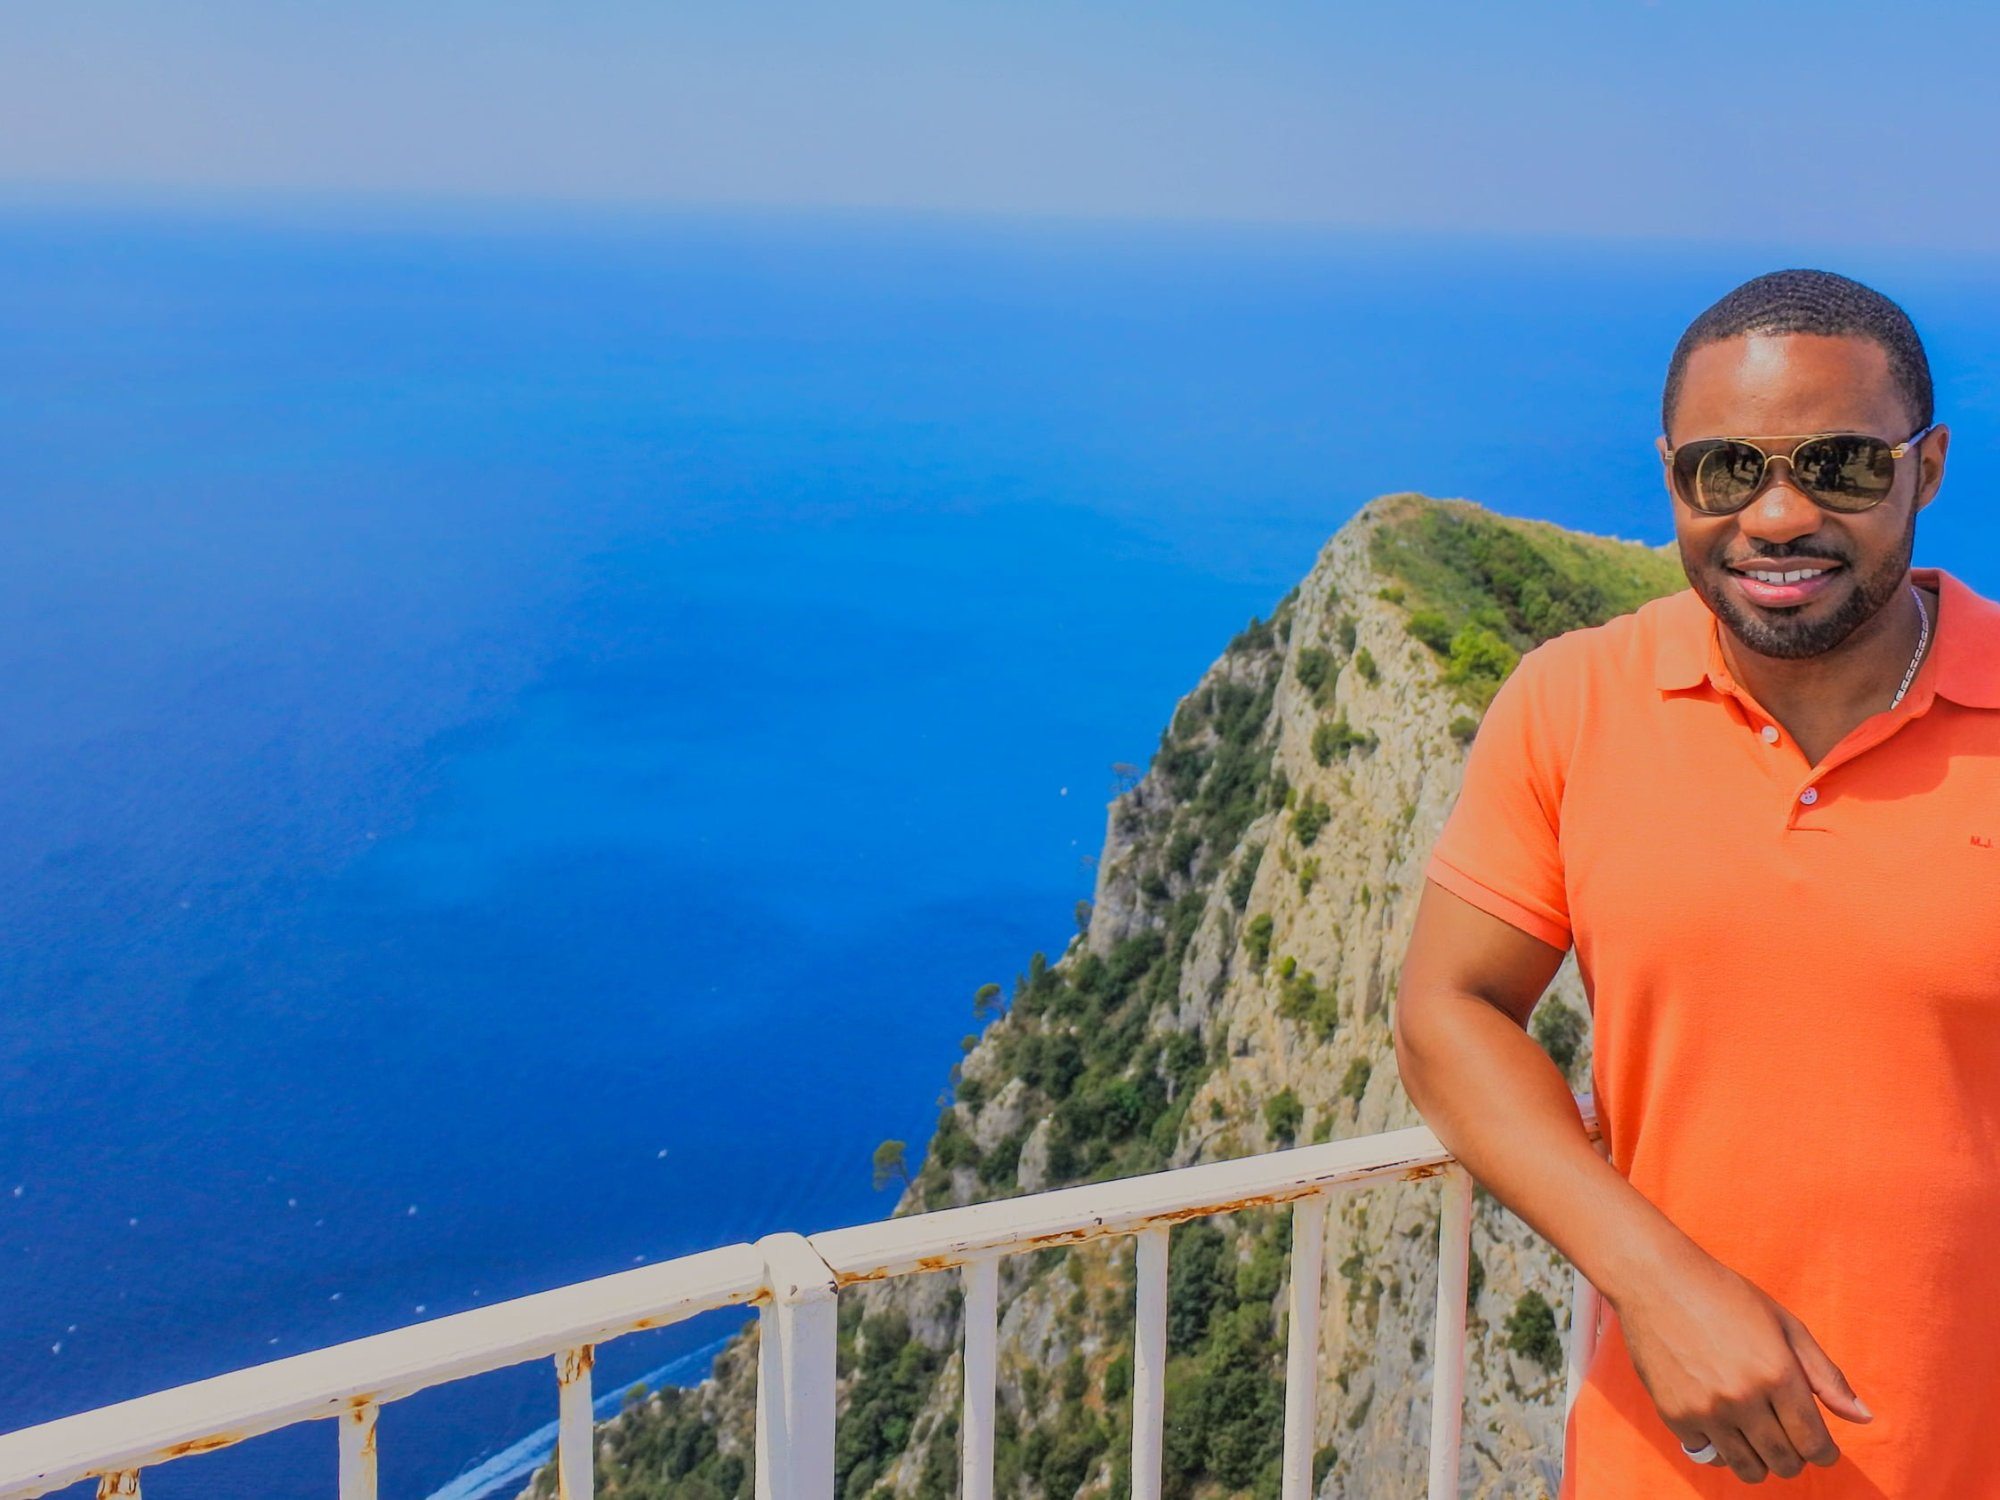 Isle of Capri Tyrone Smith Italy Views Ana Capri Marc Jacobs